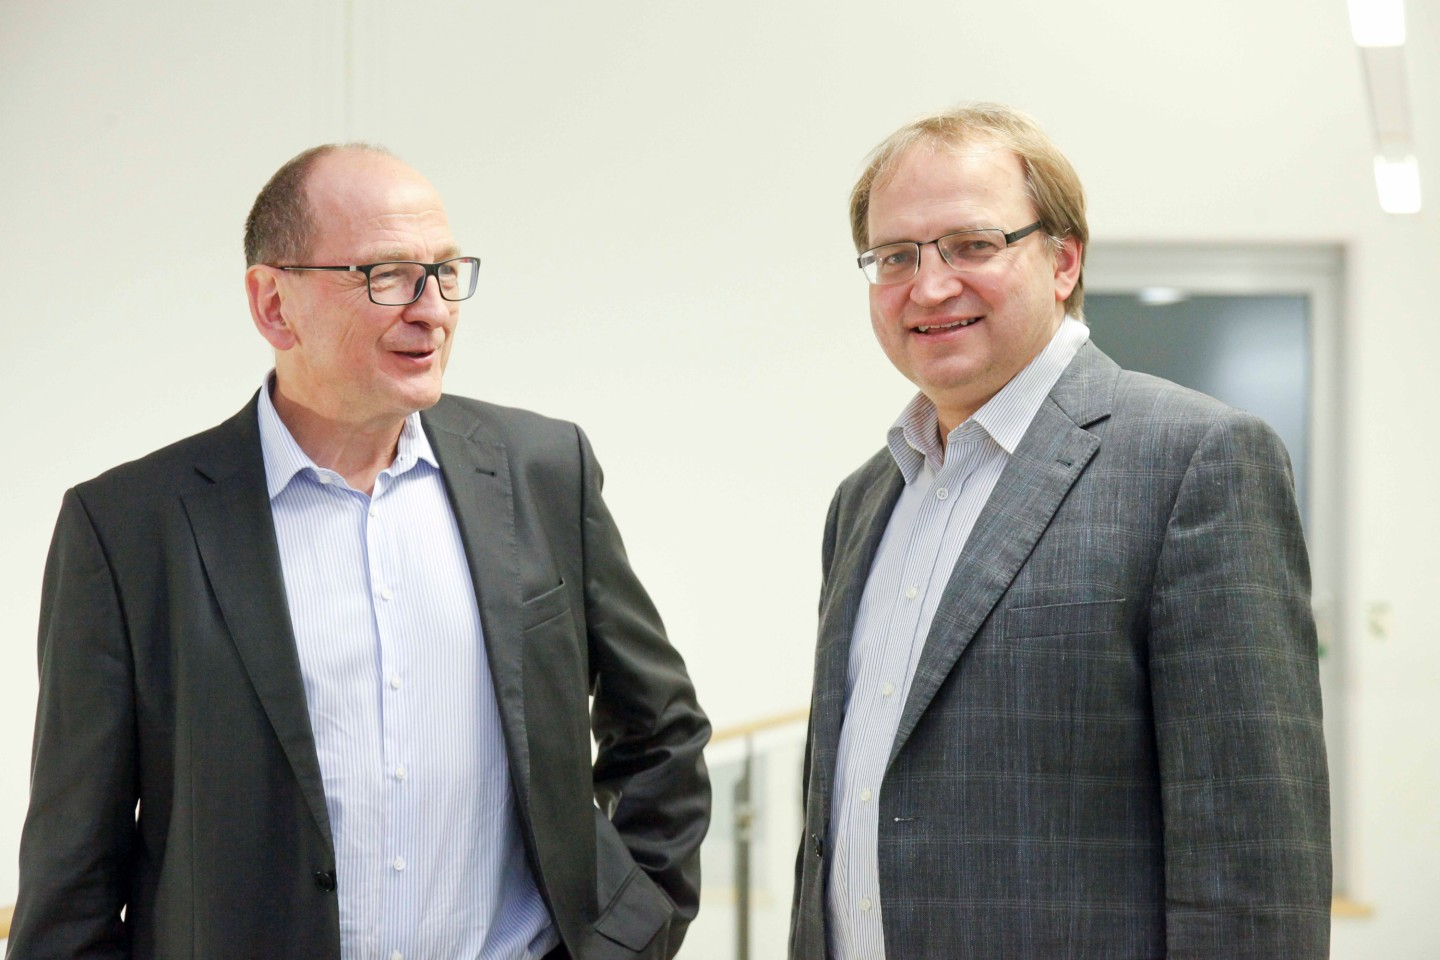 Executive Director Prof. Dr. Albert Heuberger (left) and Director with focus on Audio & Multimedia Dr. Bernhard Grill (right)